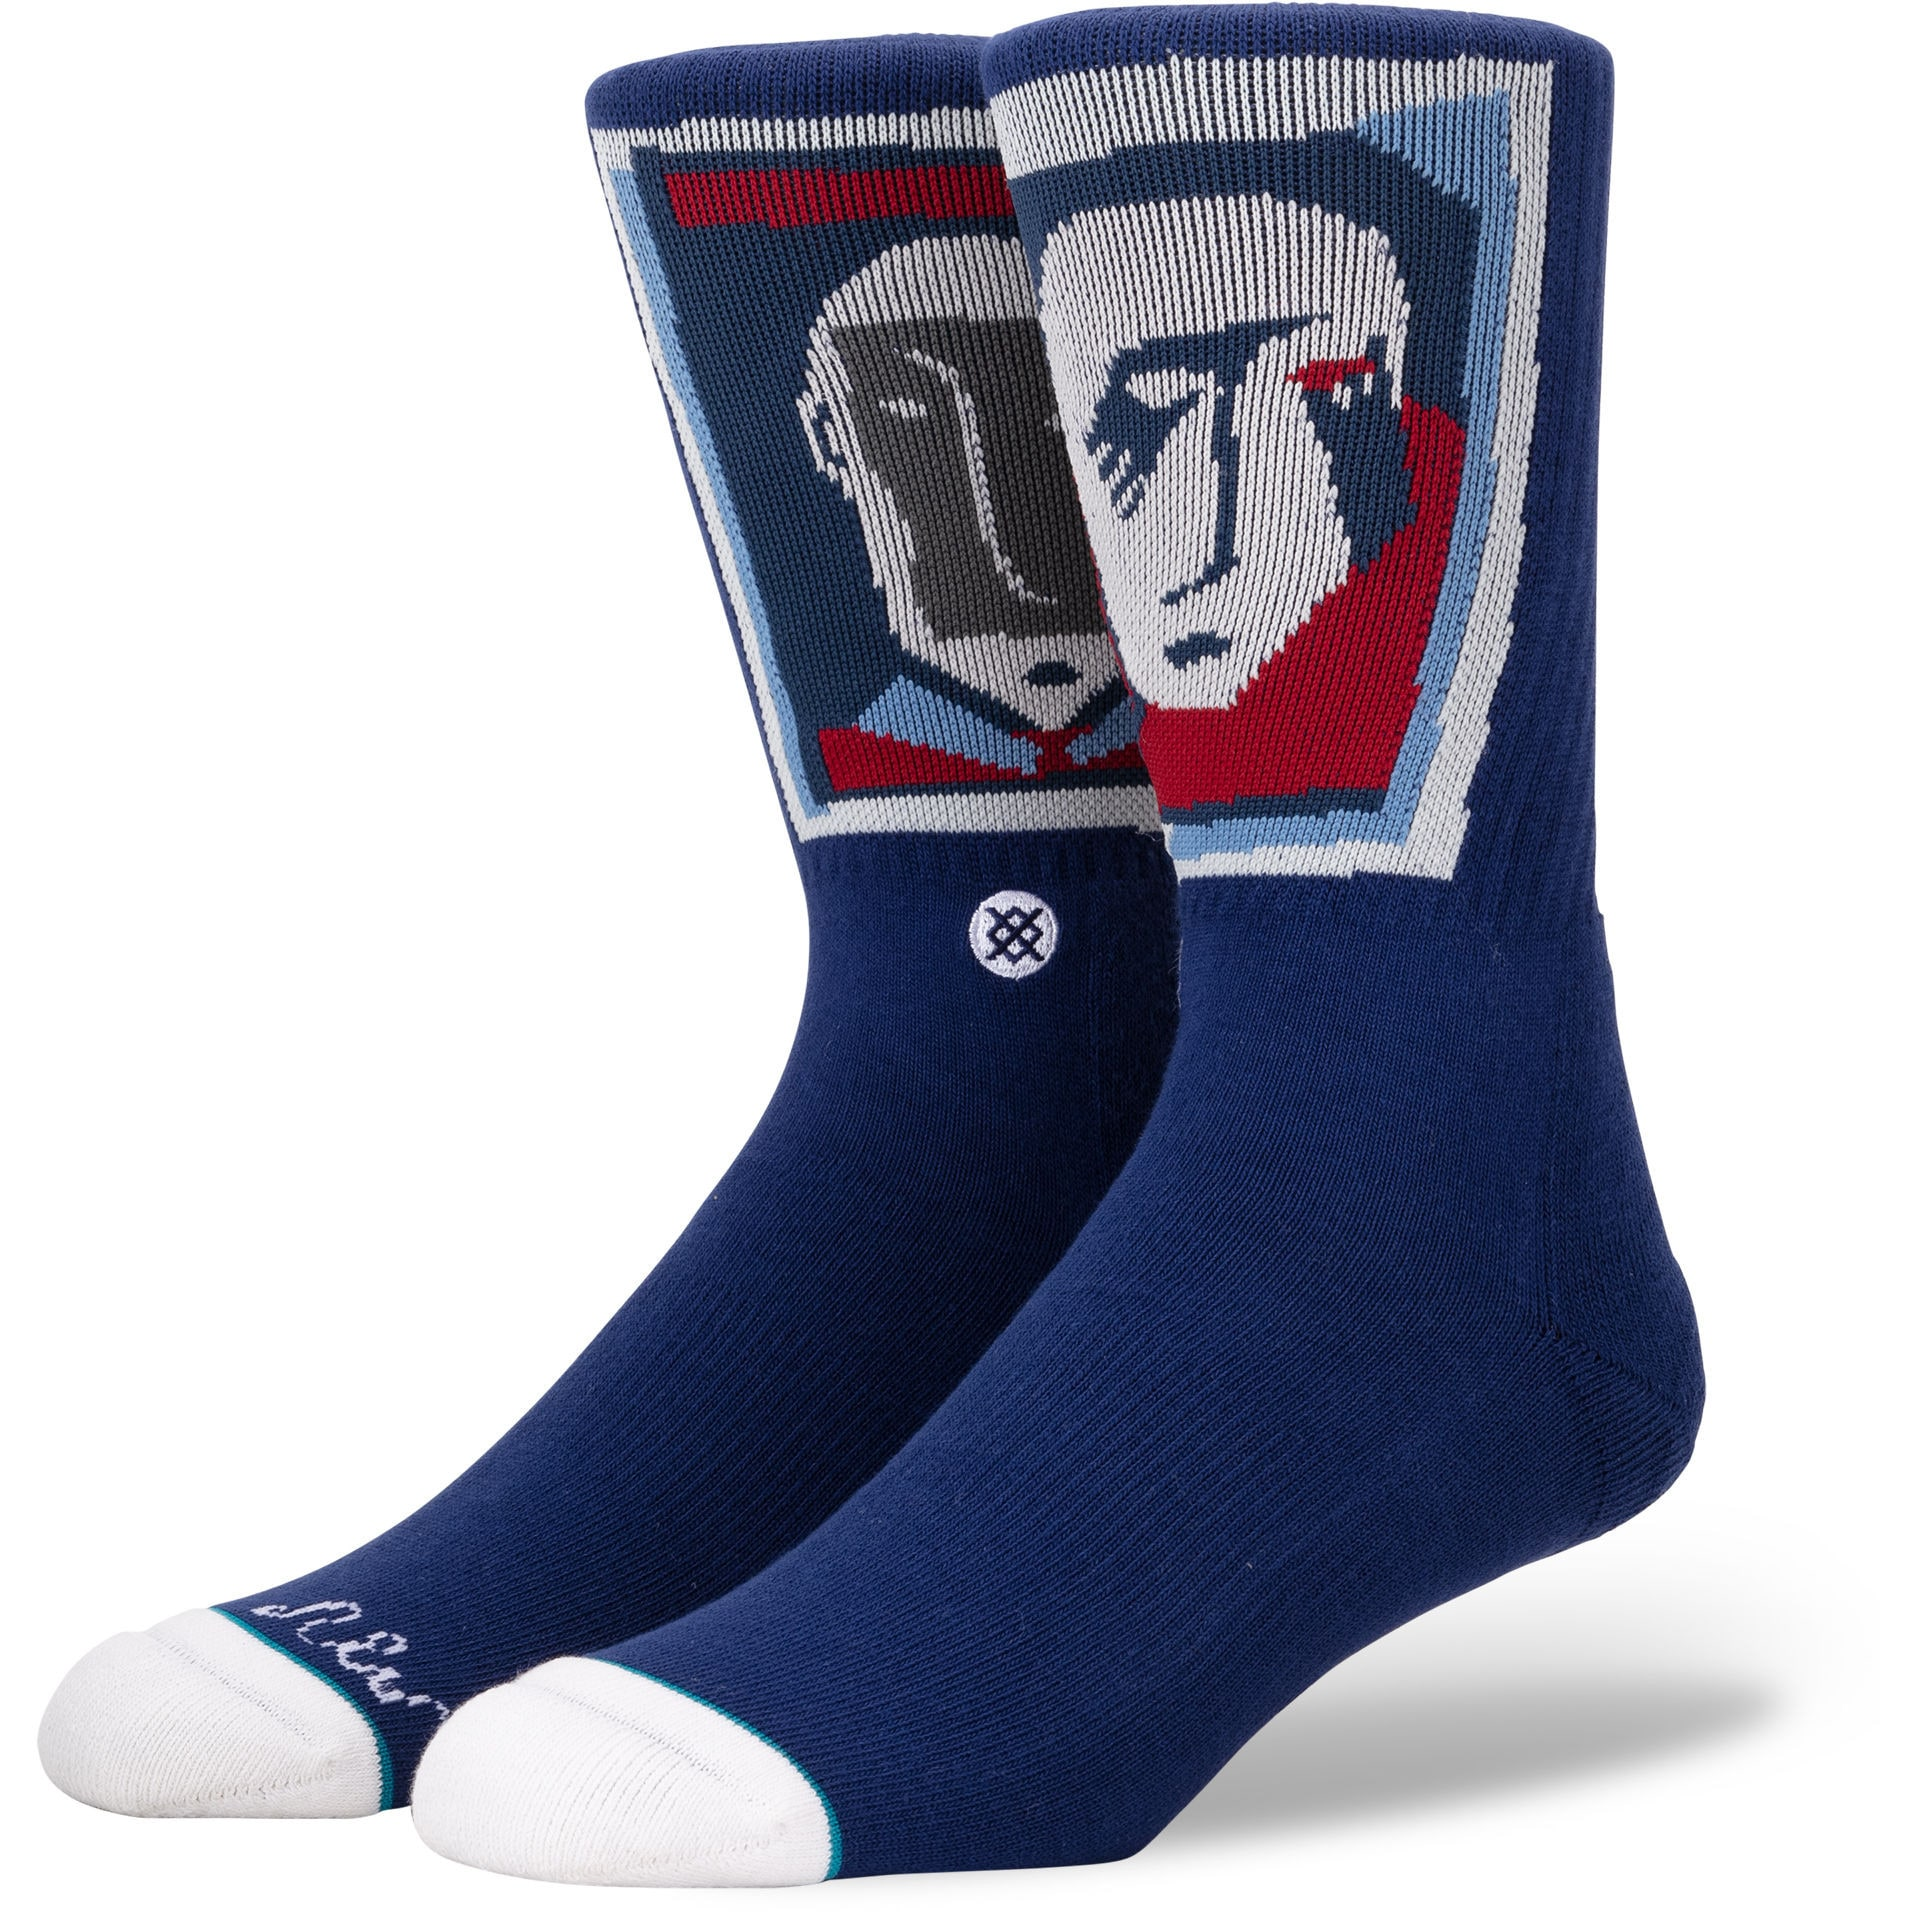 Image of Stance Face Socks - Navy